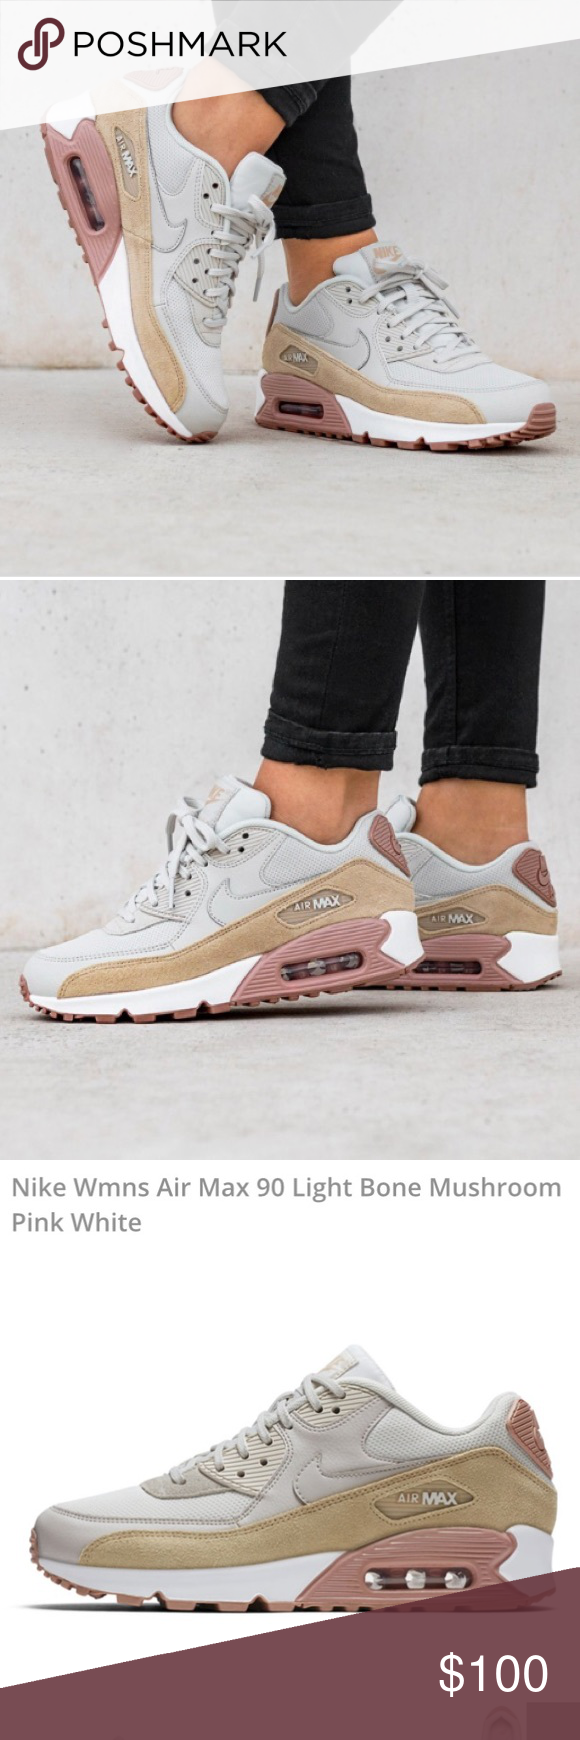 d6ef154b57254 NWOB NIKE WMNS AIR MAX 90 Size 5/5.5 material: leather/synthetic/textil  Color: LIGHT BONE/MUSHROOM-PARTICLE PINK-WHITE Nike Shoes Sneakers